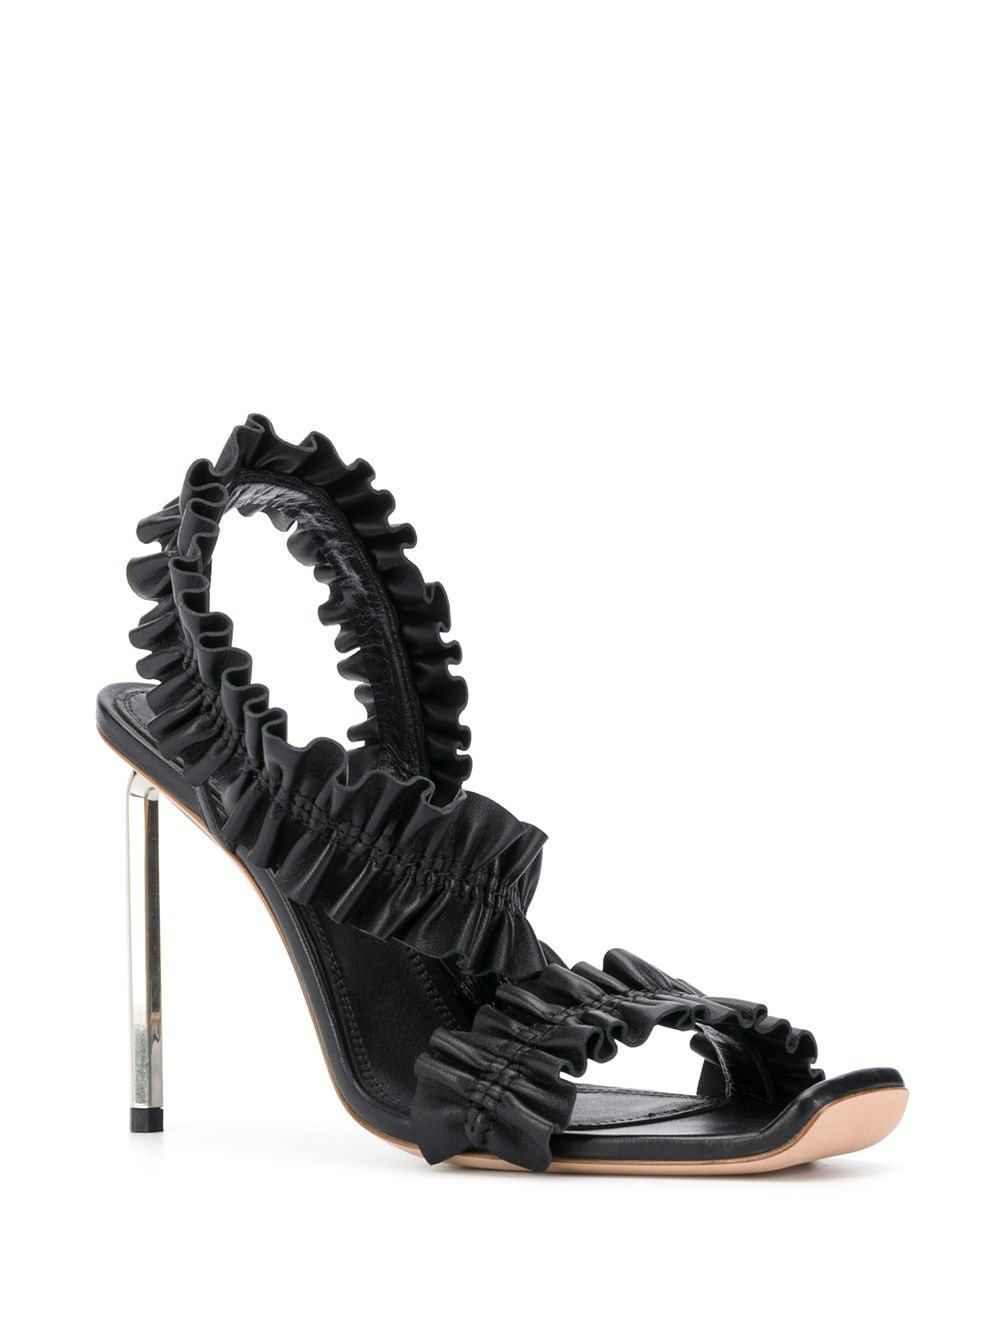 OFF-WHITE Nappa Sandal Black